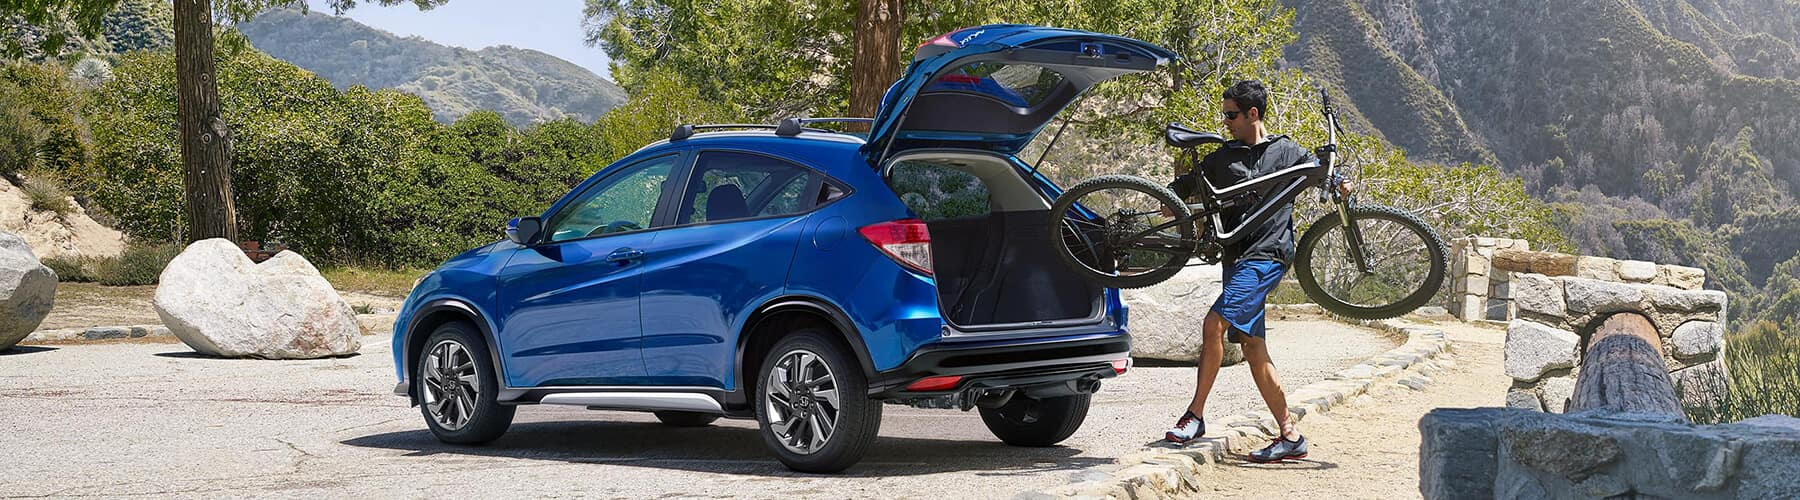 2019 Honda Hr V Milwaukee Honda Dealers Subcompact